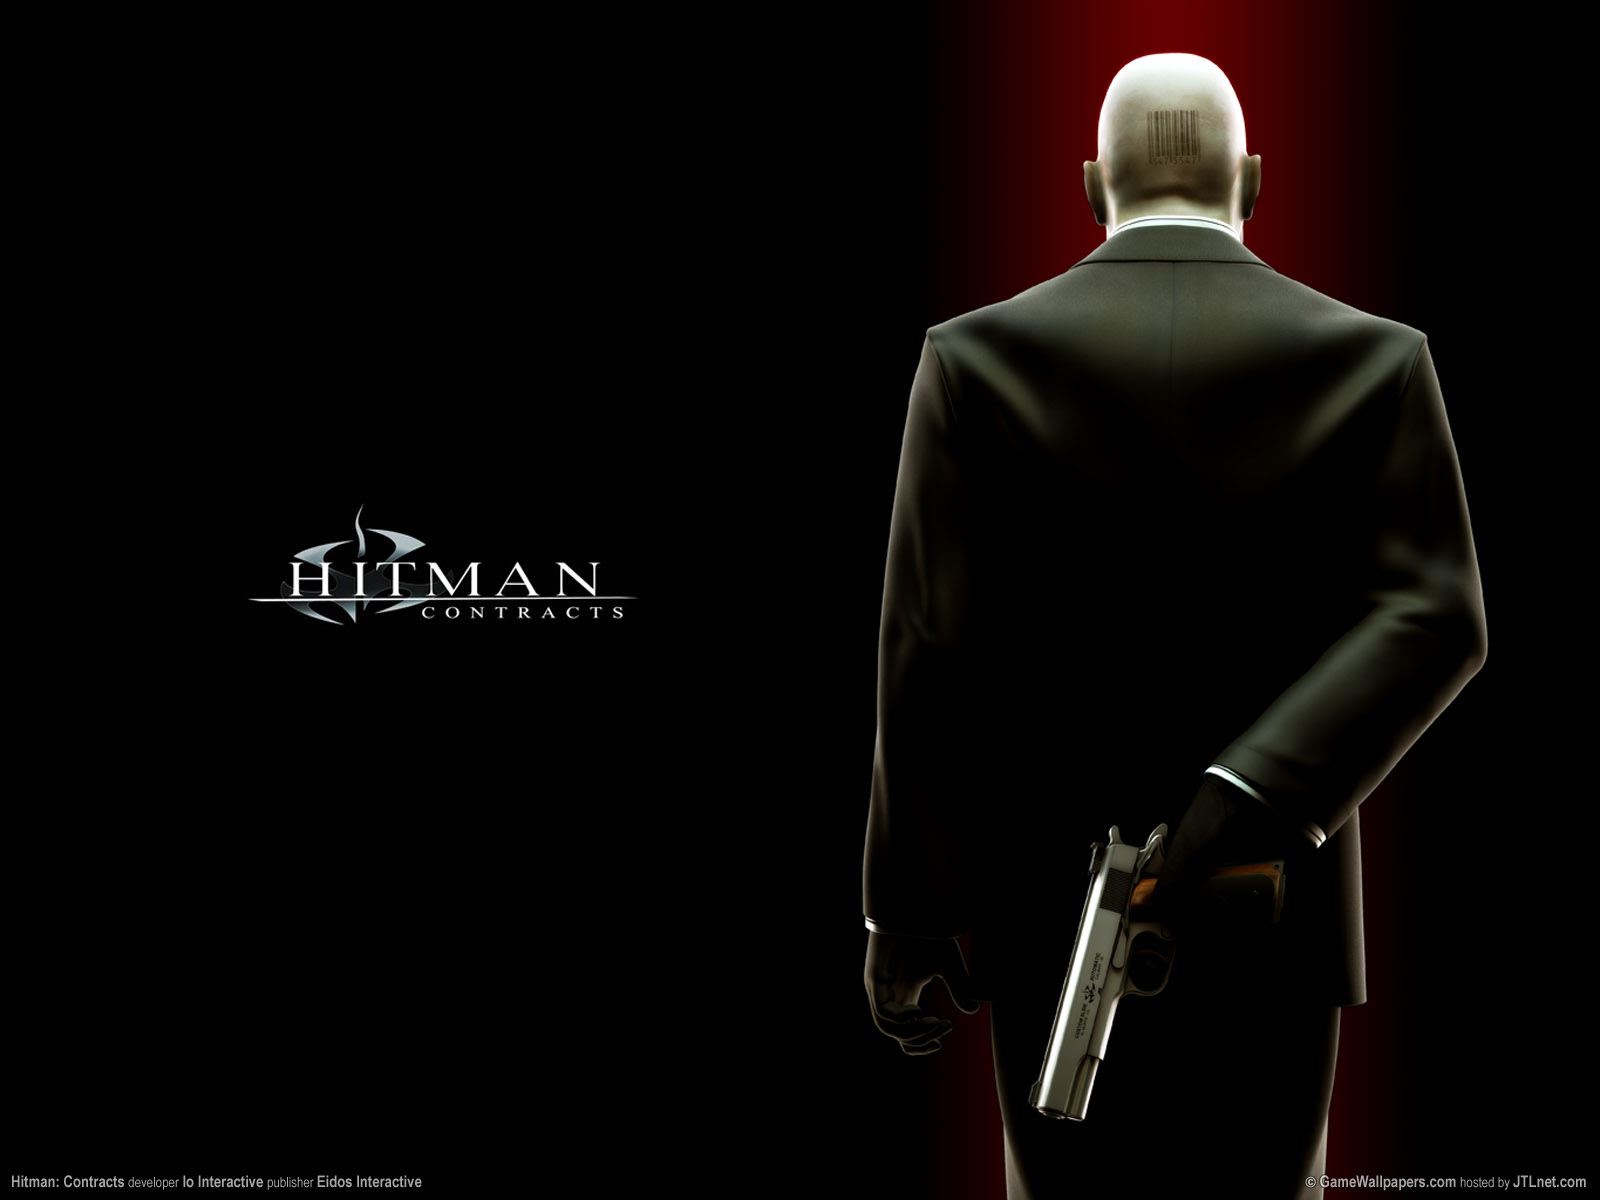 Hitman: Contracts wallpapers | Hitman: Contracts stock photos